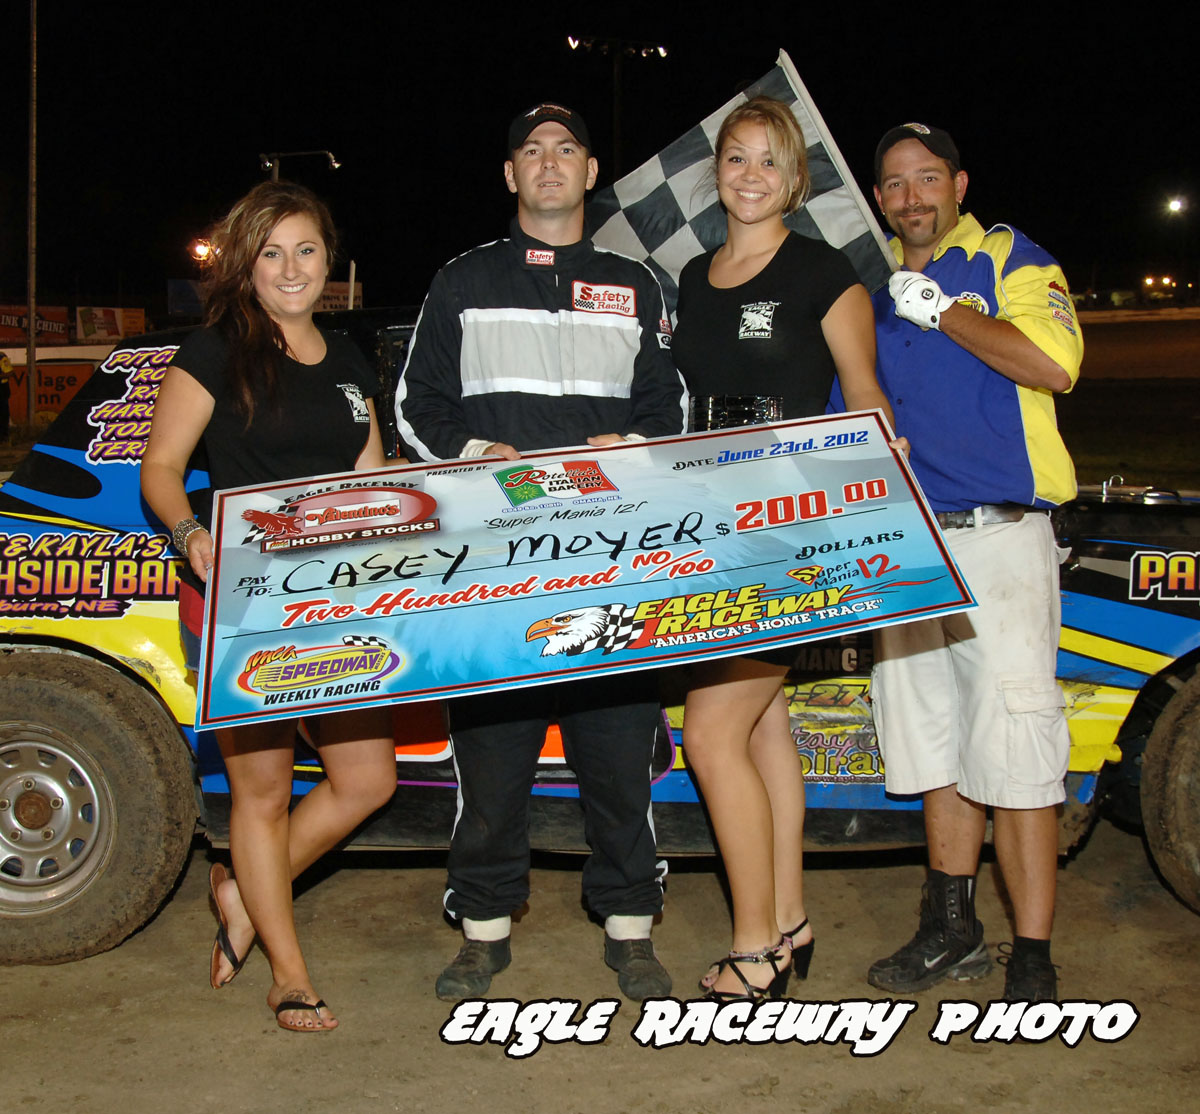 eagle-06-23-12-446-casey-moyer-with-jamie-kromberg-and-lindsey-flodman-and-flagman-billy-lloyd